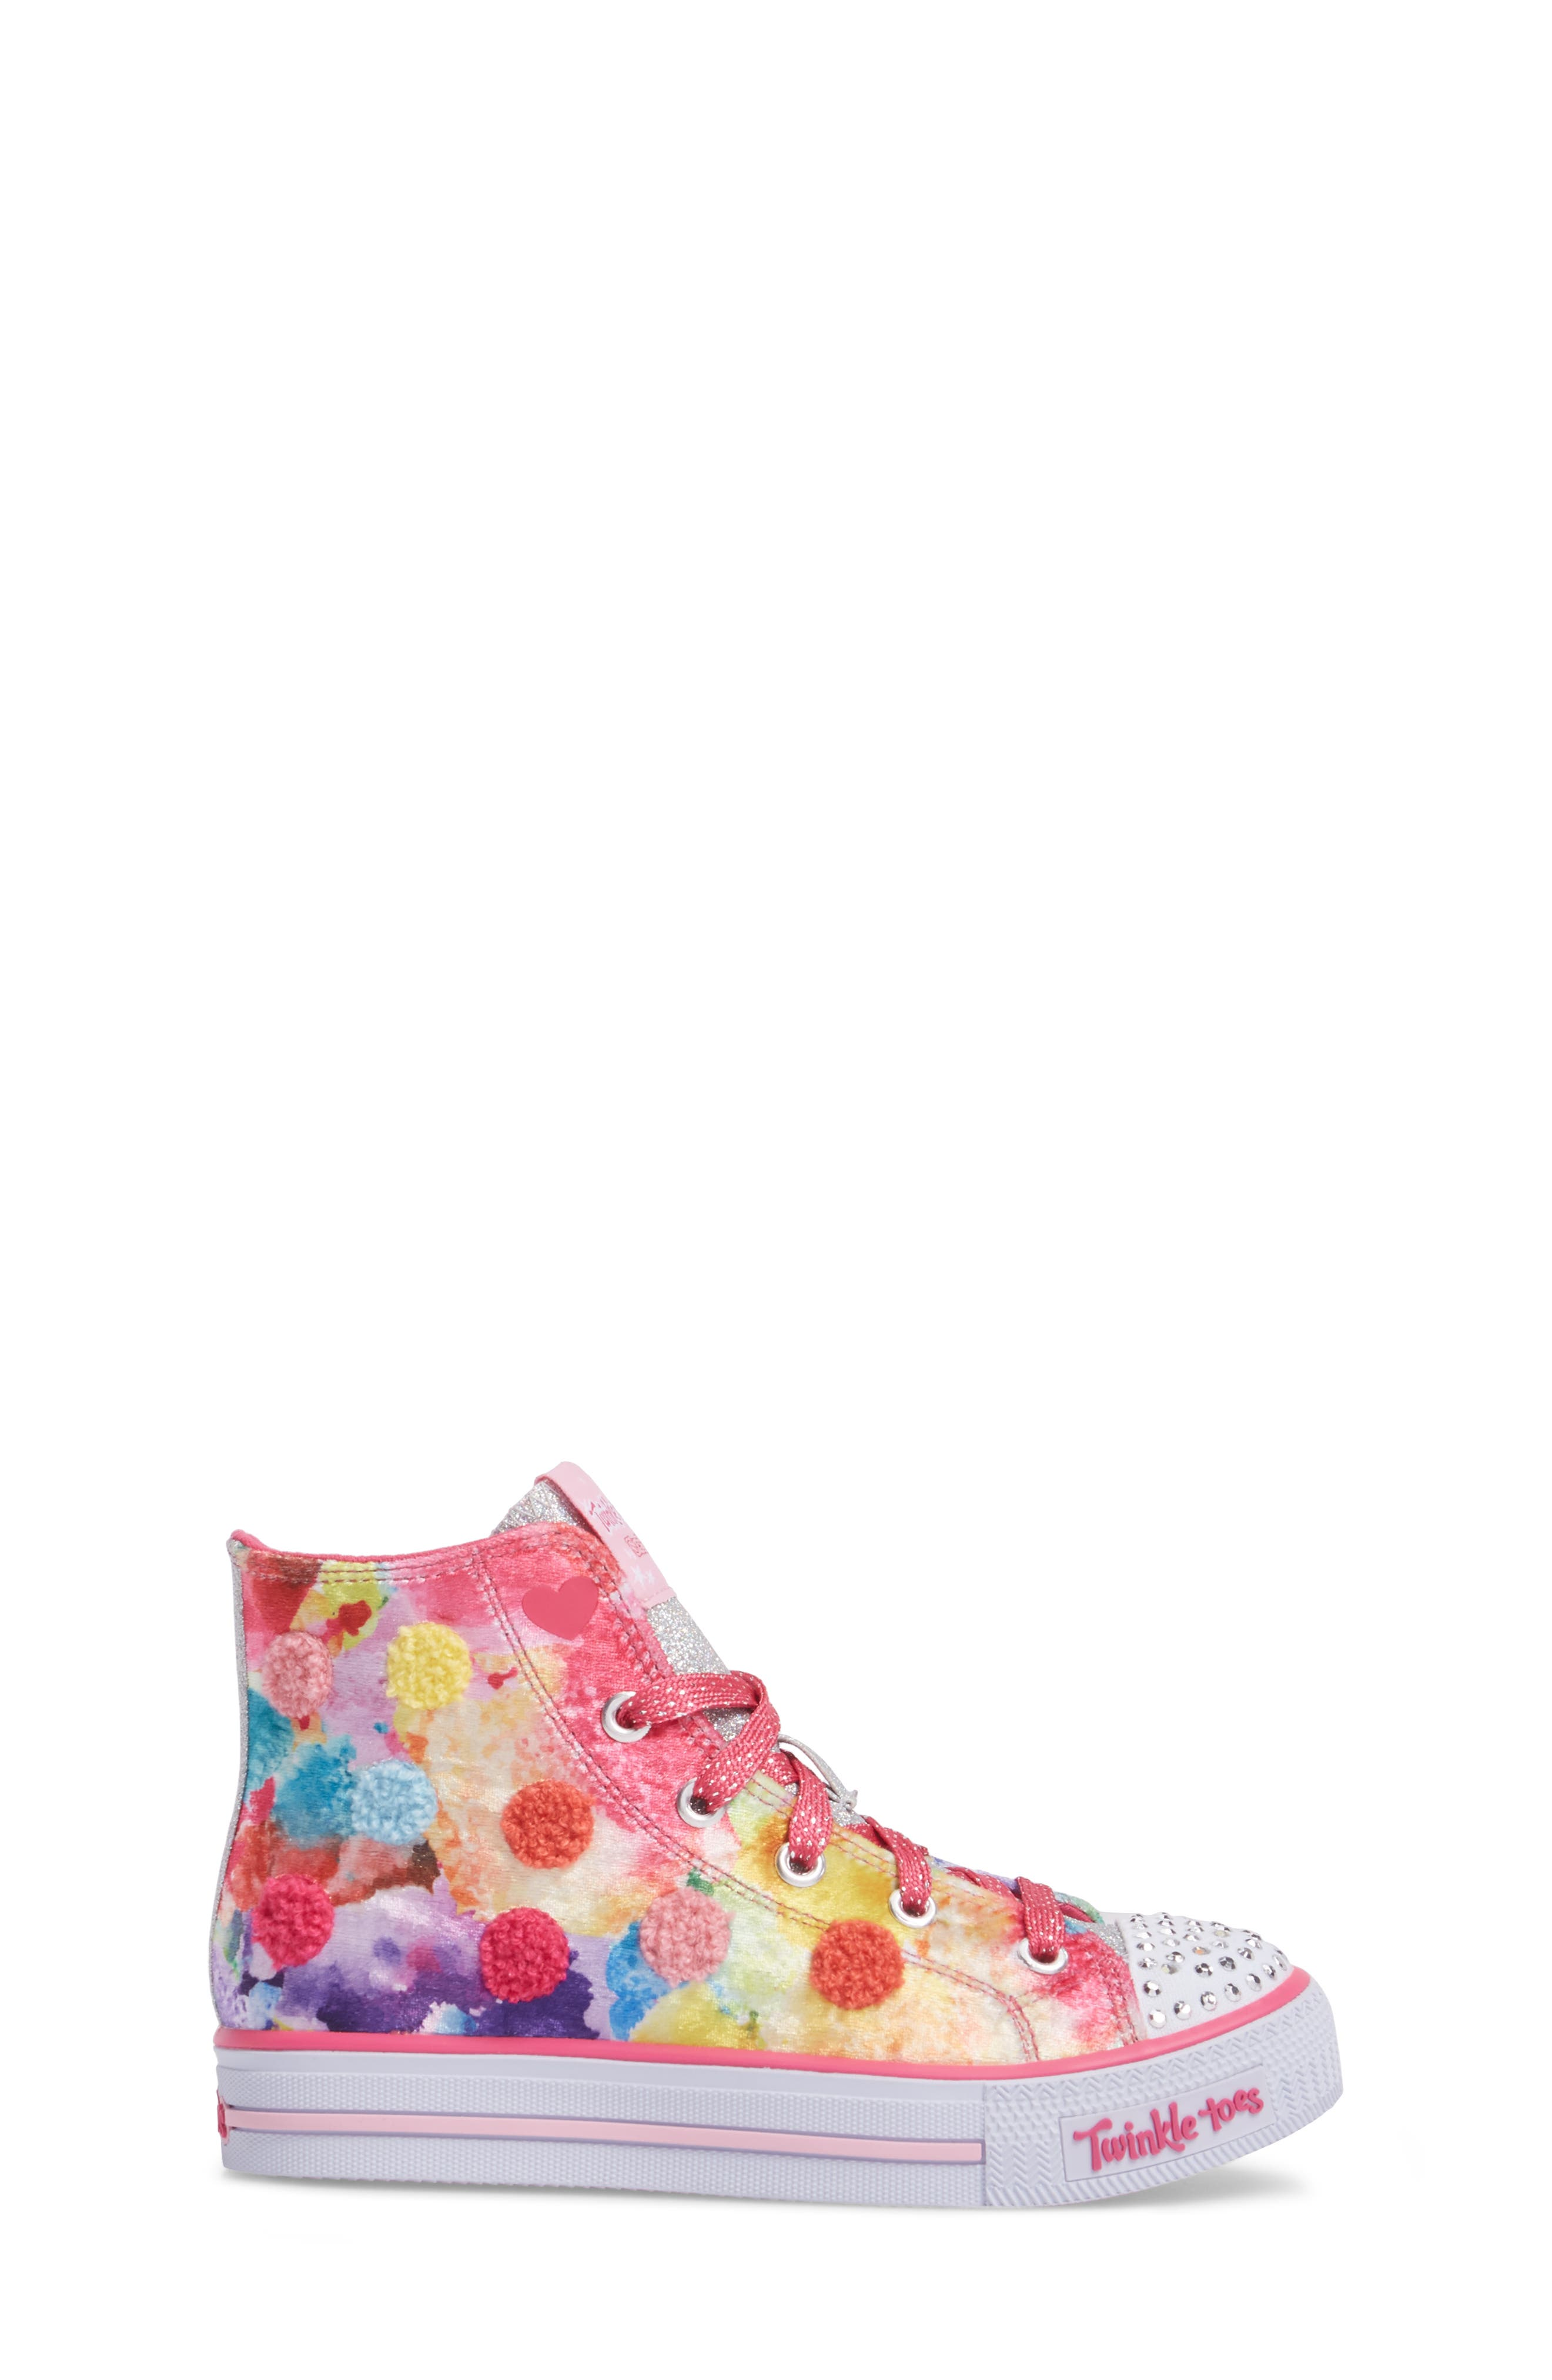 Twinkle Toes Shuffles Light-Up High Top Sneaker,                             Alternate thumbnail 3, color,                             Hot Pink/ Multi